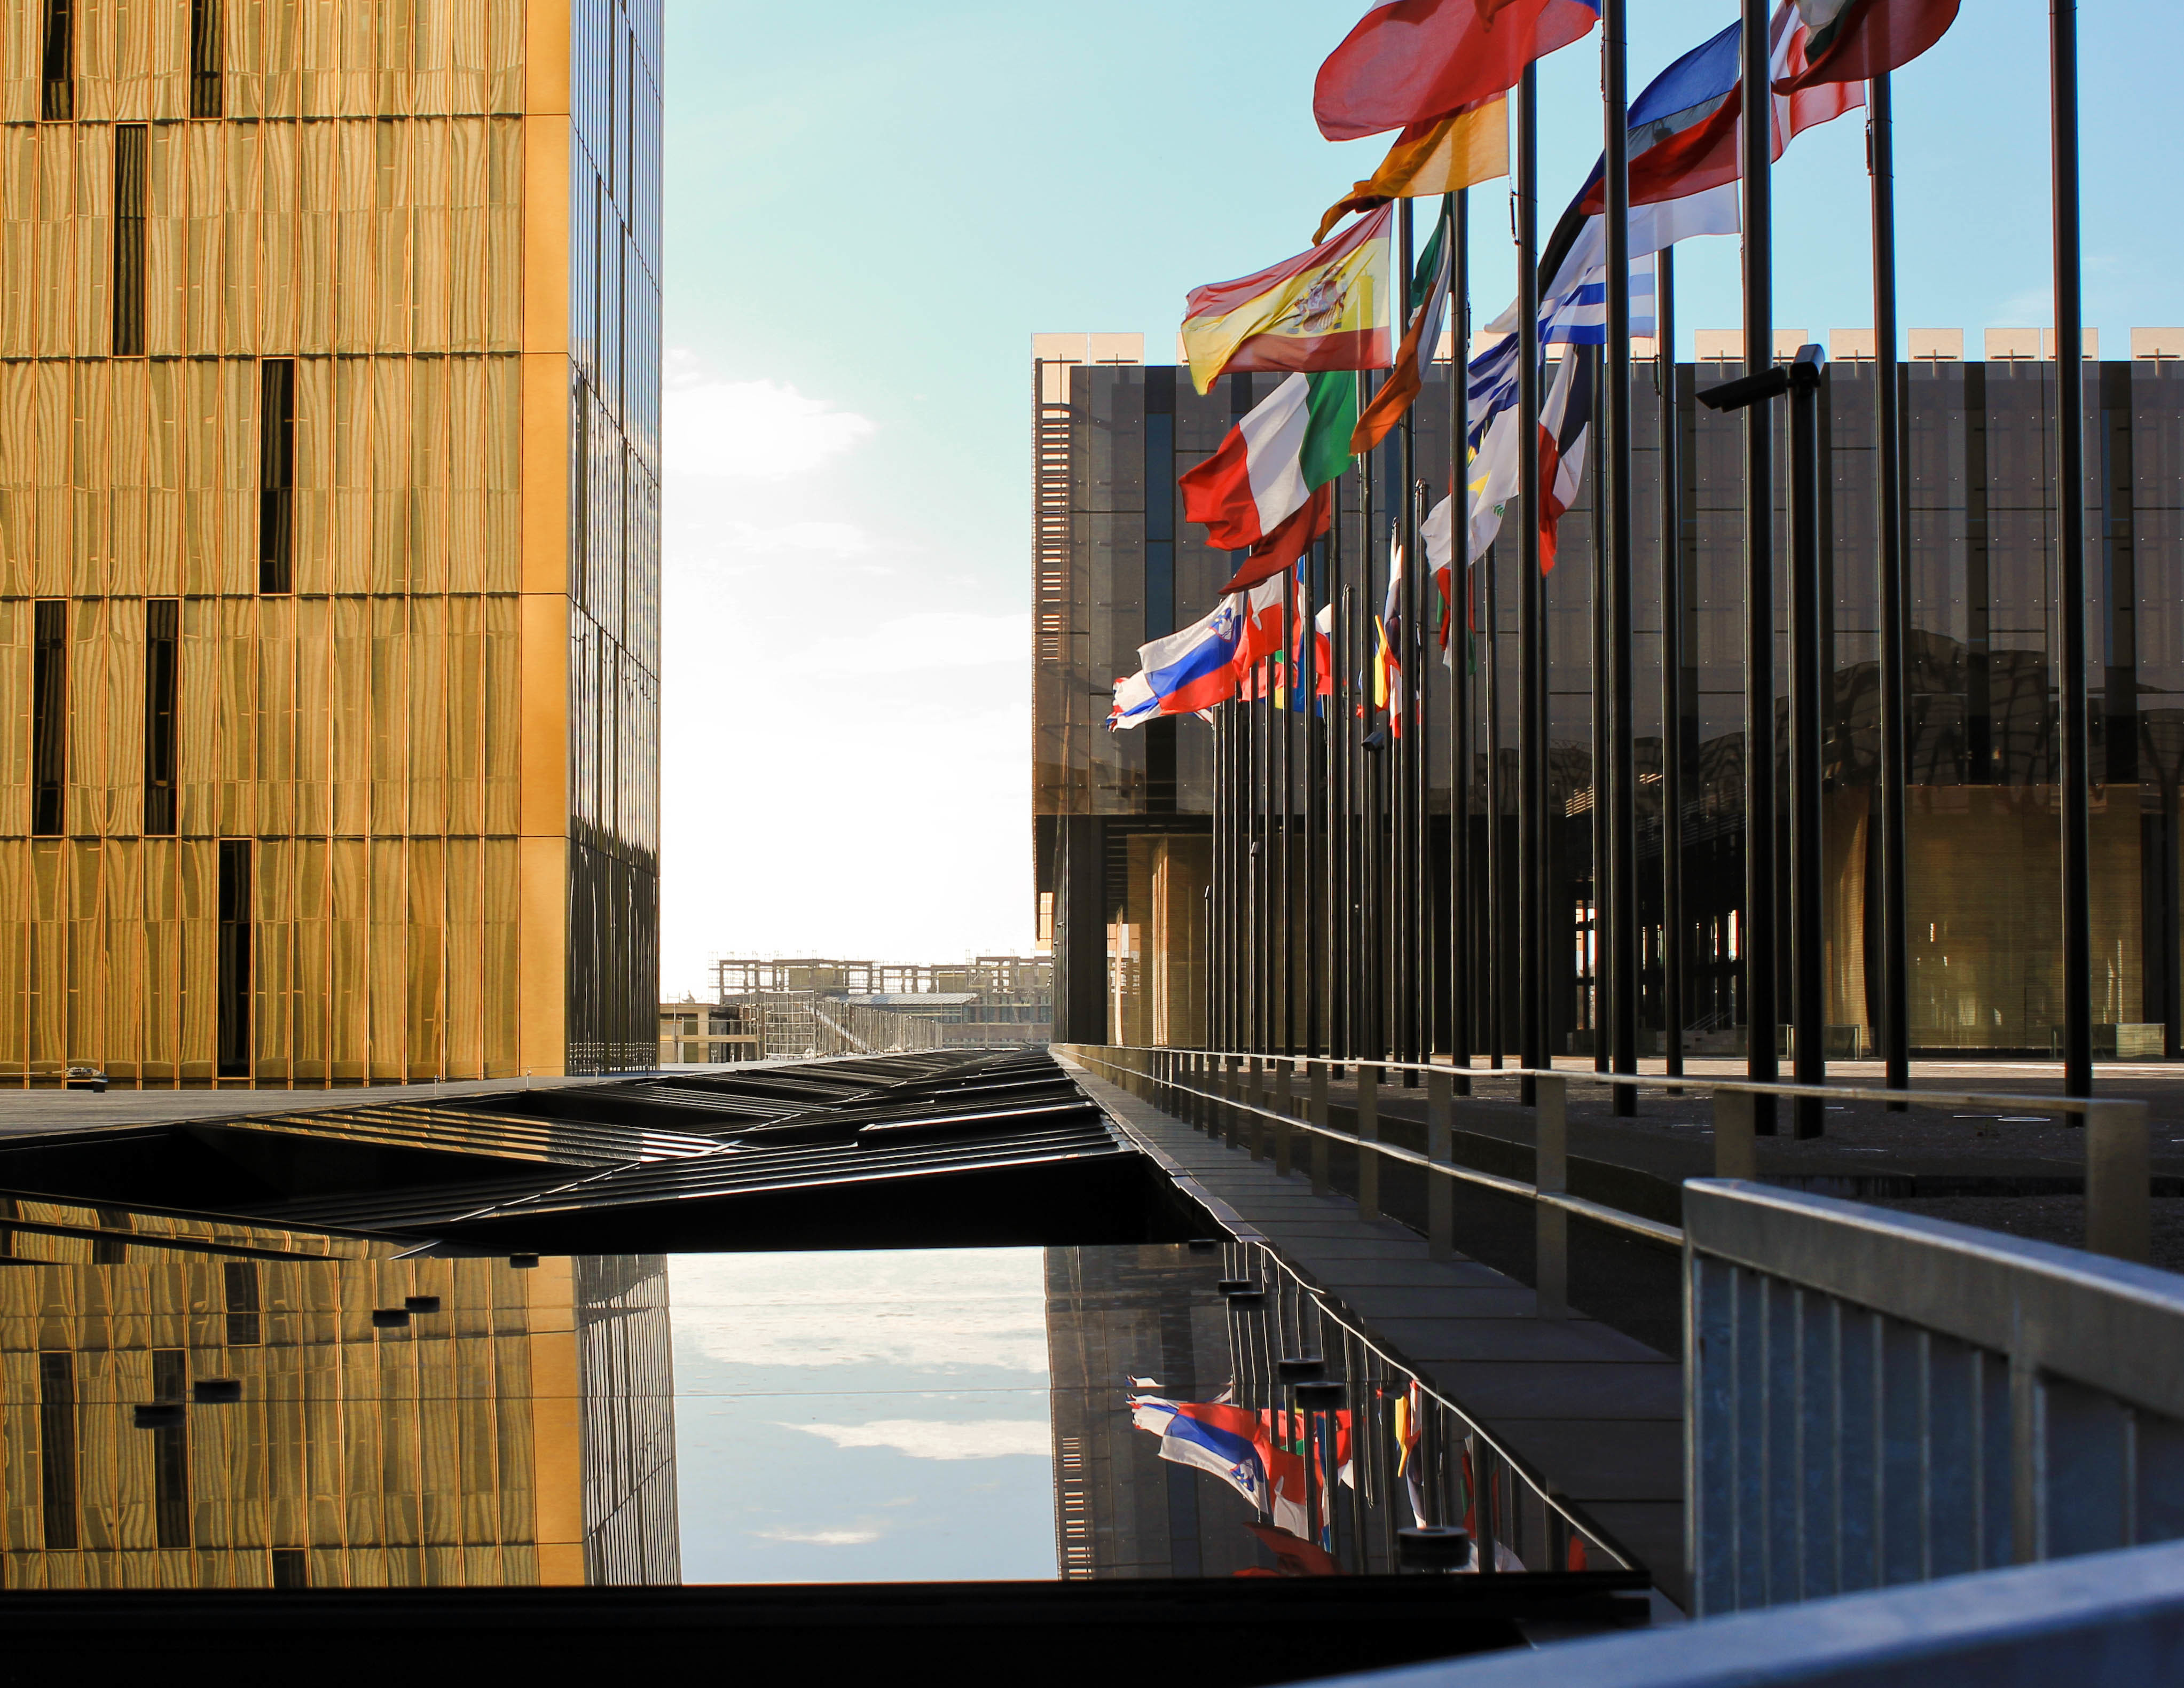 Flags from EU member states fly outside the European Court in Luxembourg, reflected in the water surrounding the building